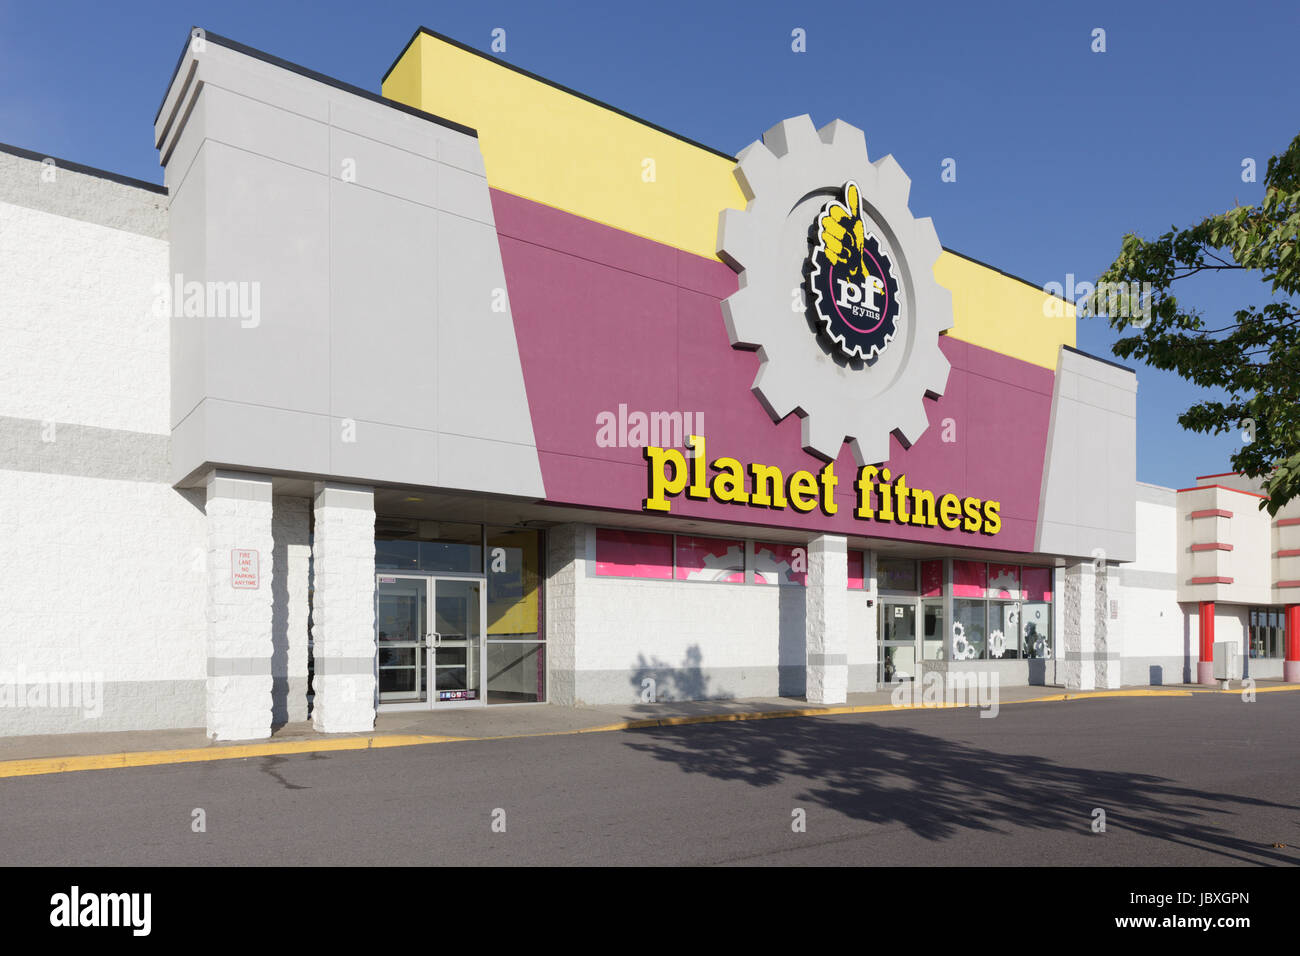 AMSTERDAM, NY/USA - JUNE 9 2017: Planet Fitness is a fitness center franchise that began in Hampton, New Hampshire. - Stock Image